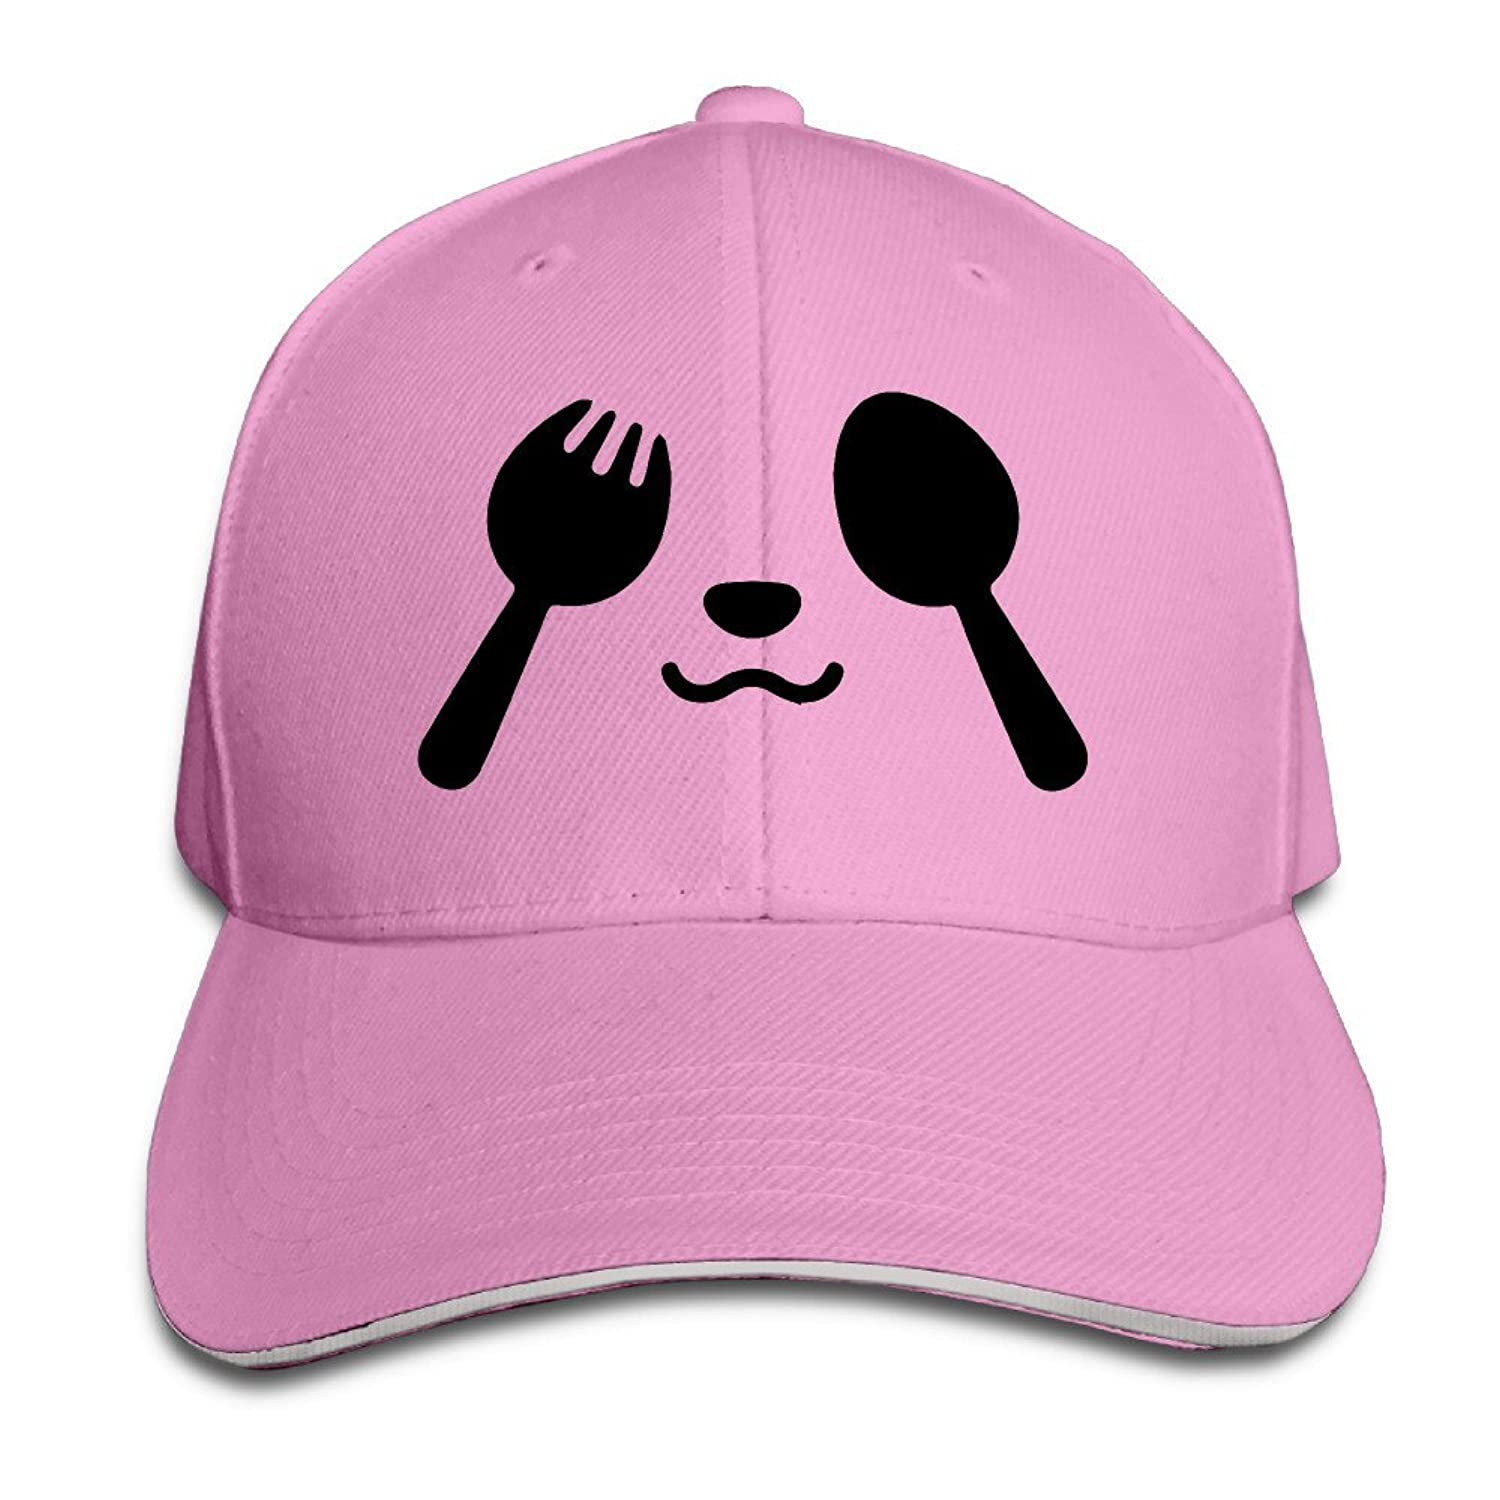 FOODE Panda Knife And Fork Peaked Baseball Cap Snapback Hats